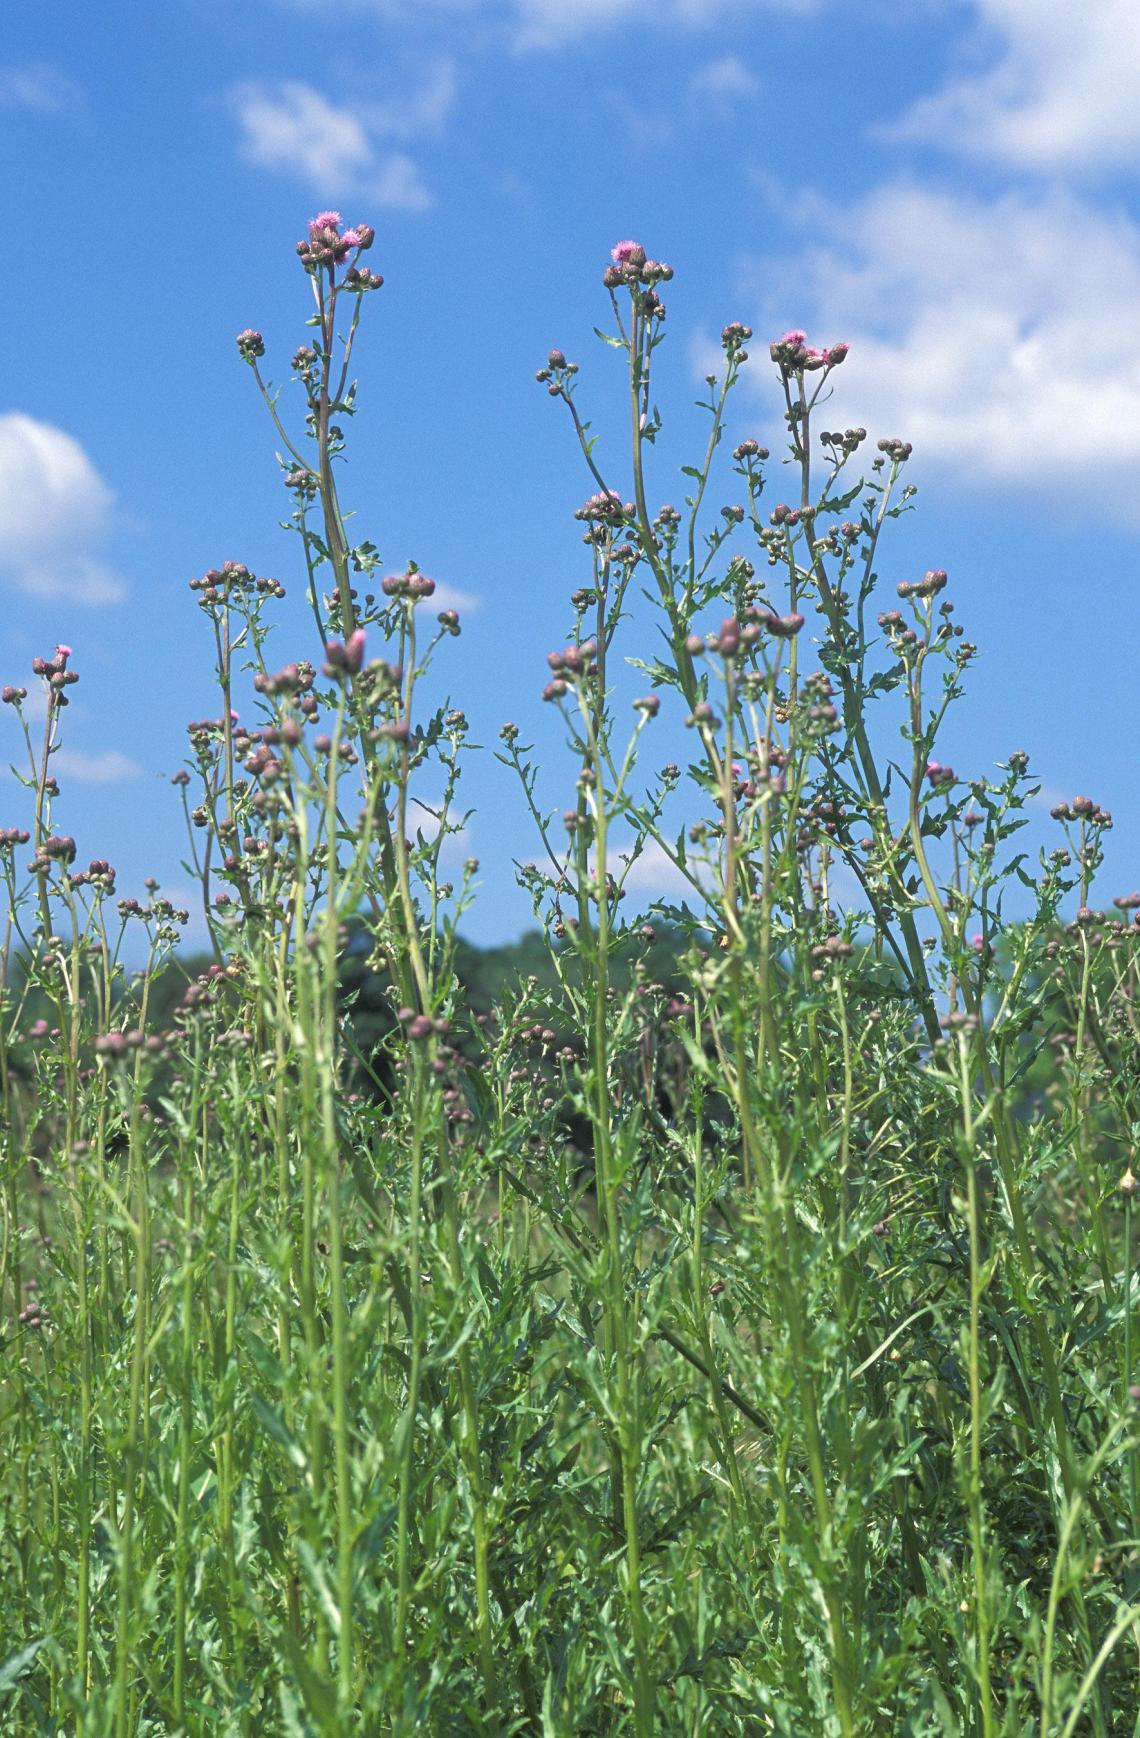 Researchers have discovered that ragweed is producing more allergenic ...